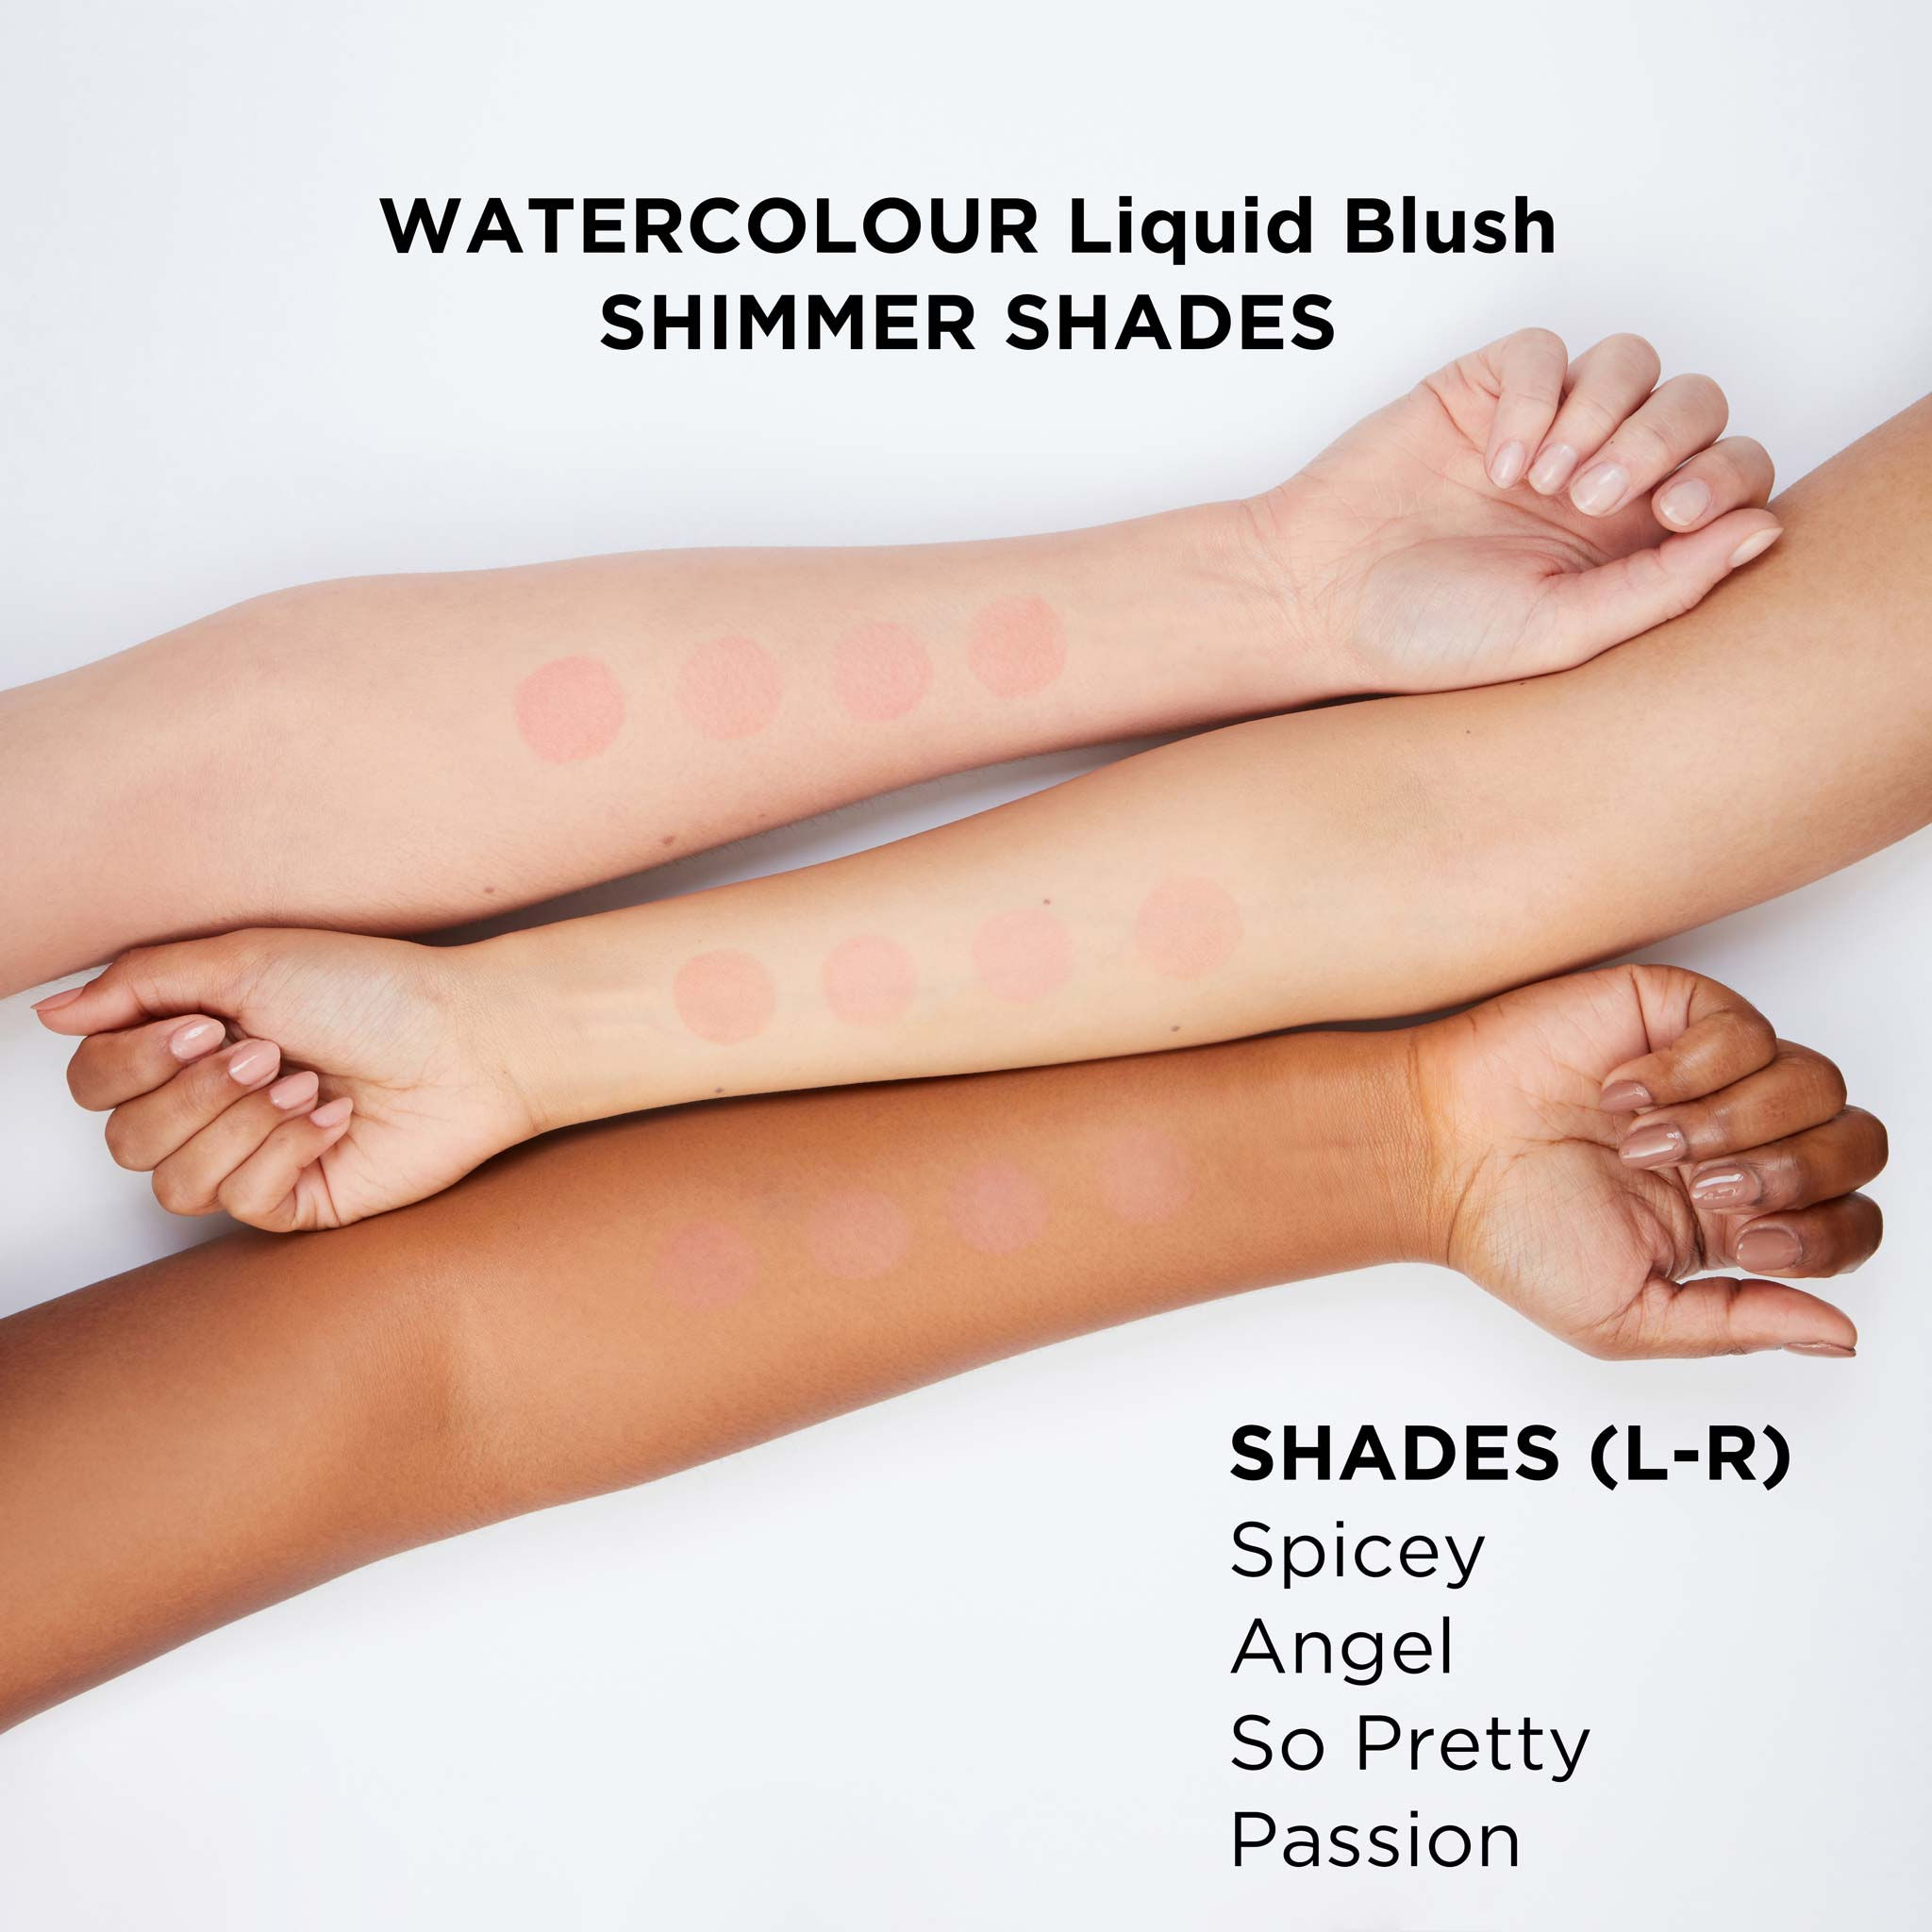 Daniel Sandler Watercolour Liquid Blush Swatches - Shimmer Finish Shades